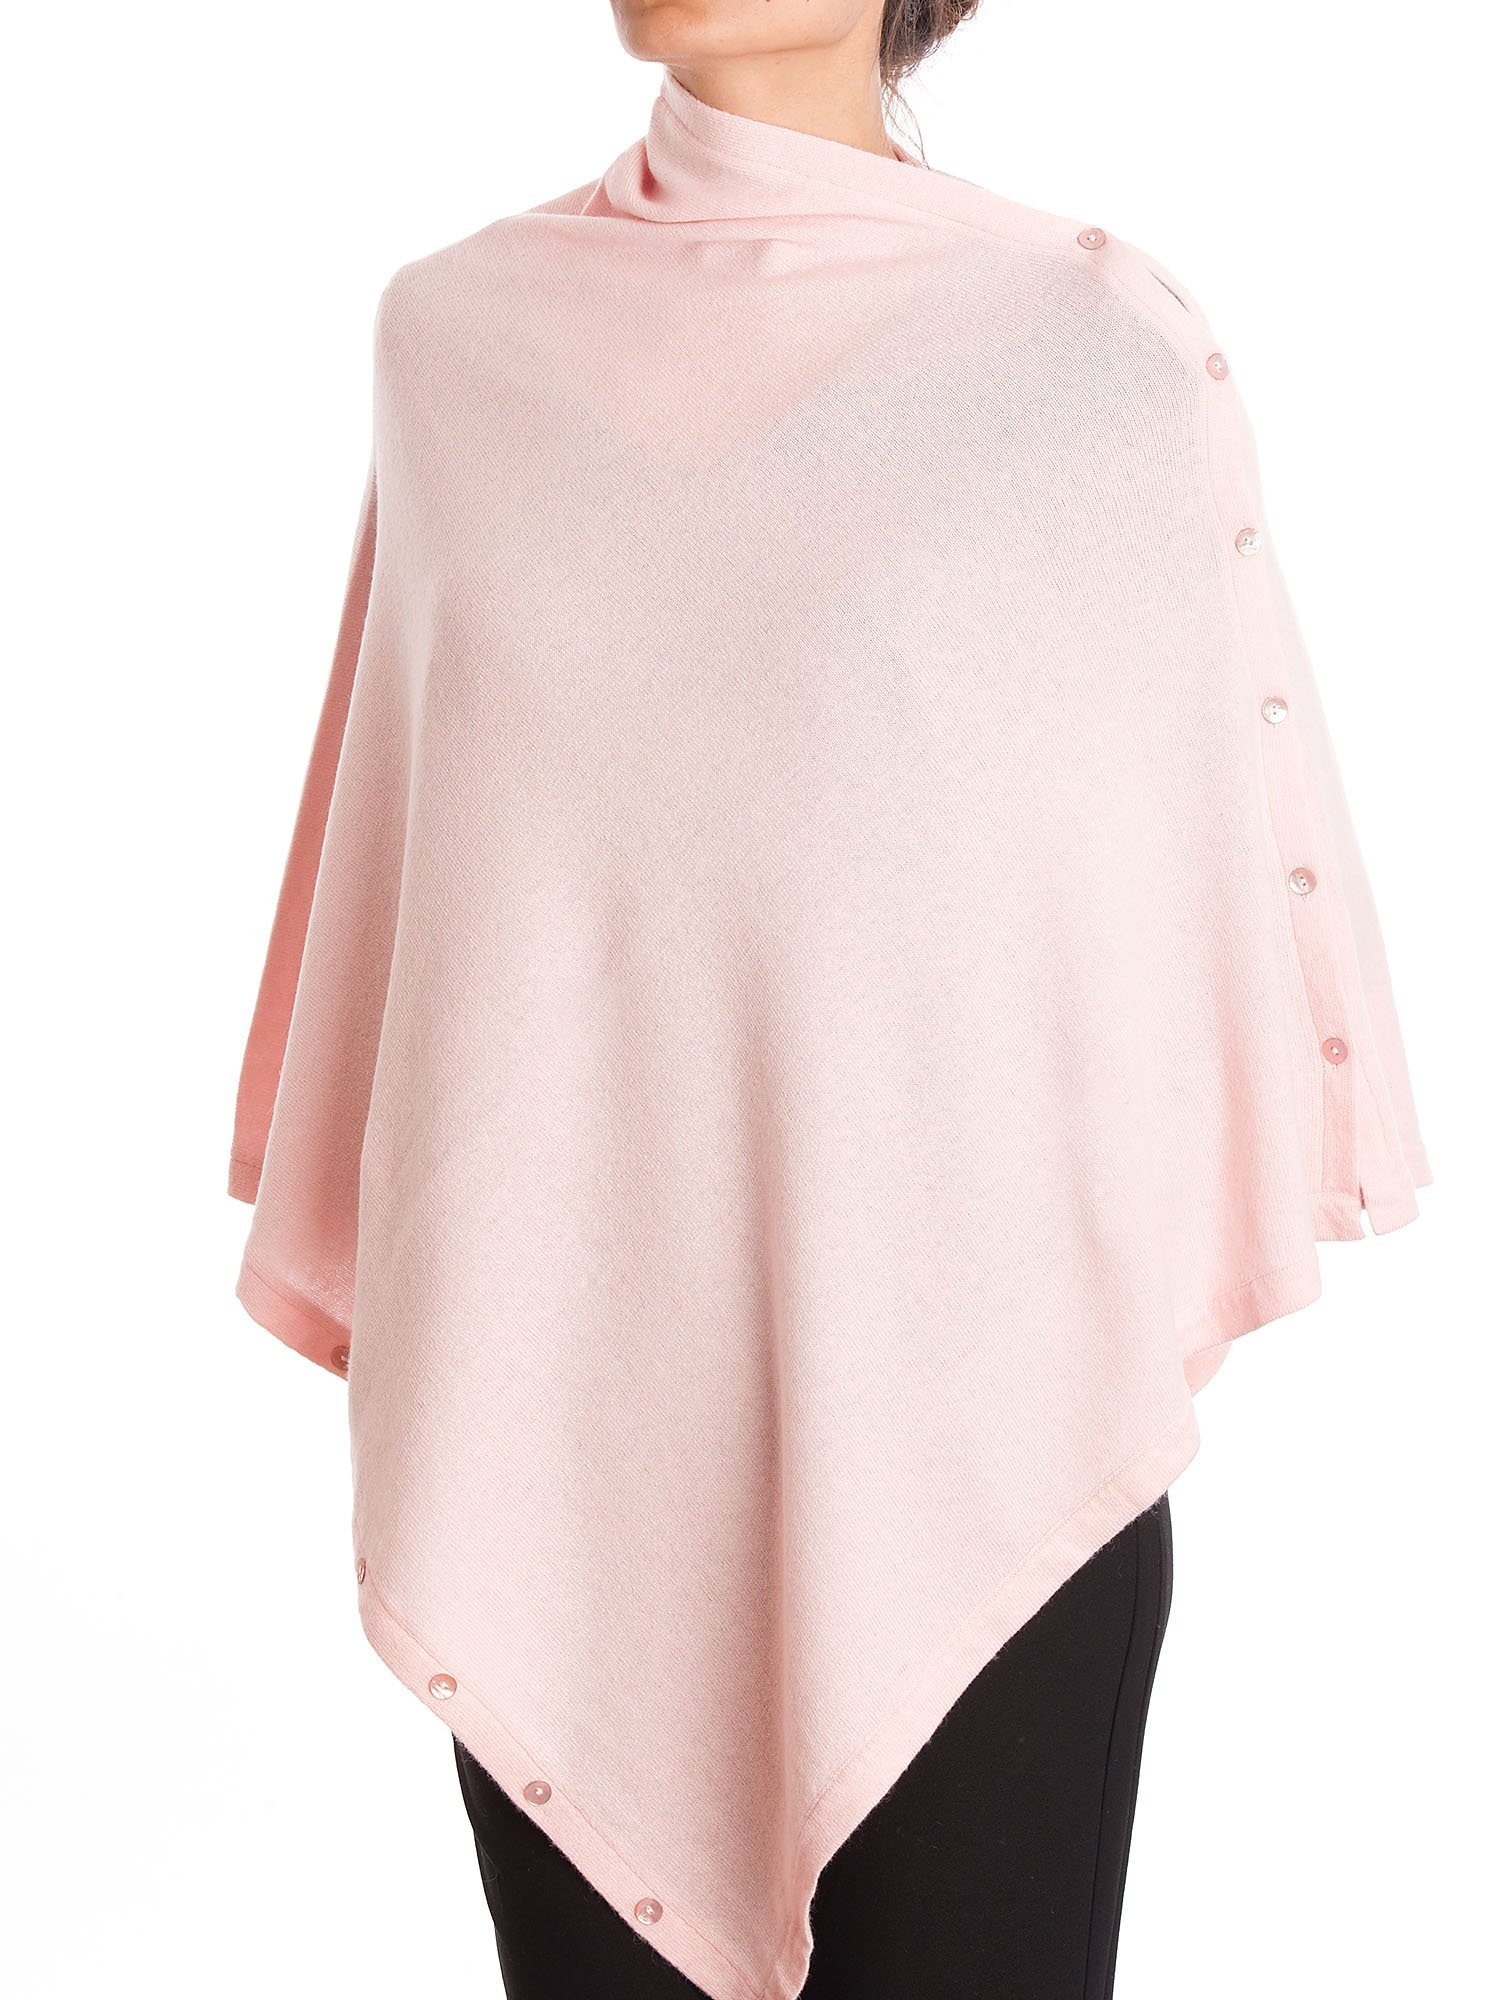 DALLE PIANE CASHMERE - Poncho with Buttons Cashmere Blended Yarns - Made in Italy, Color: Pink, One Size